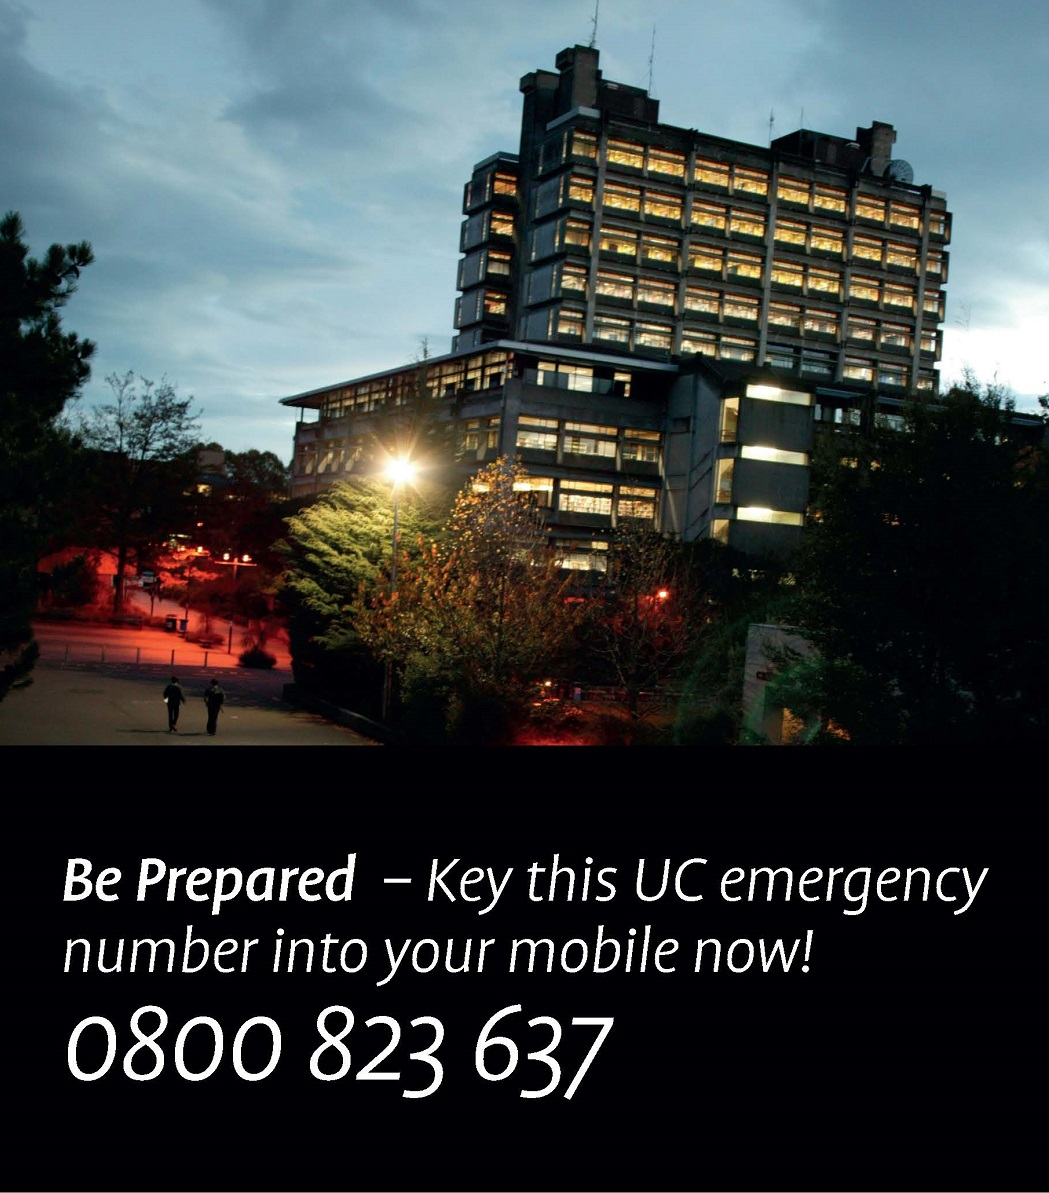 Be Prepared Poster, UC Security emergency number 0800 823 637